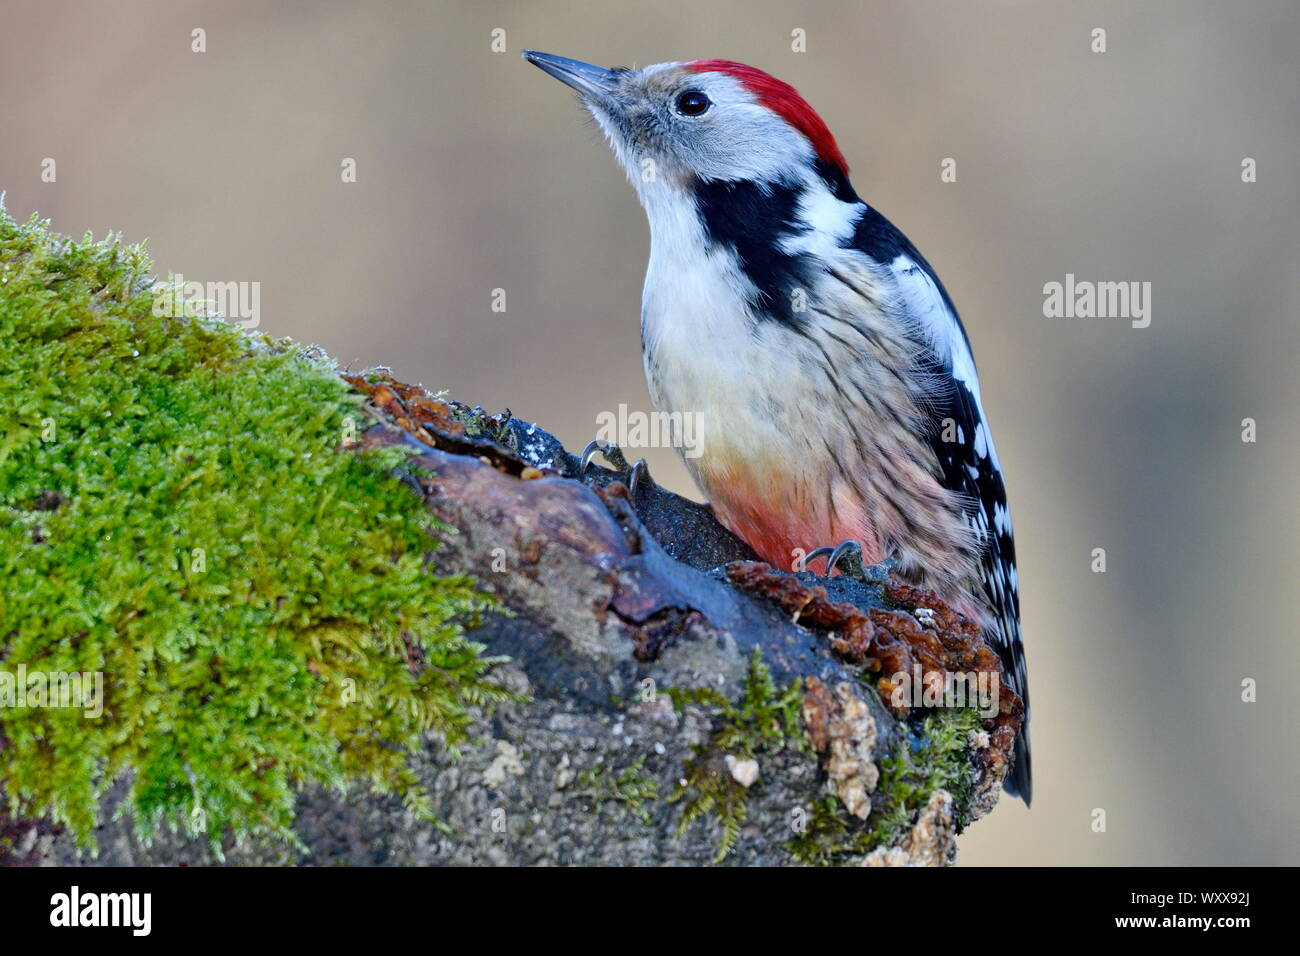 Middle Spotted Woodpecker (Dendrocopos medius) foraging on an old stump, France Stock Photo